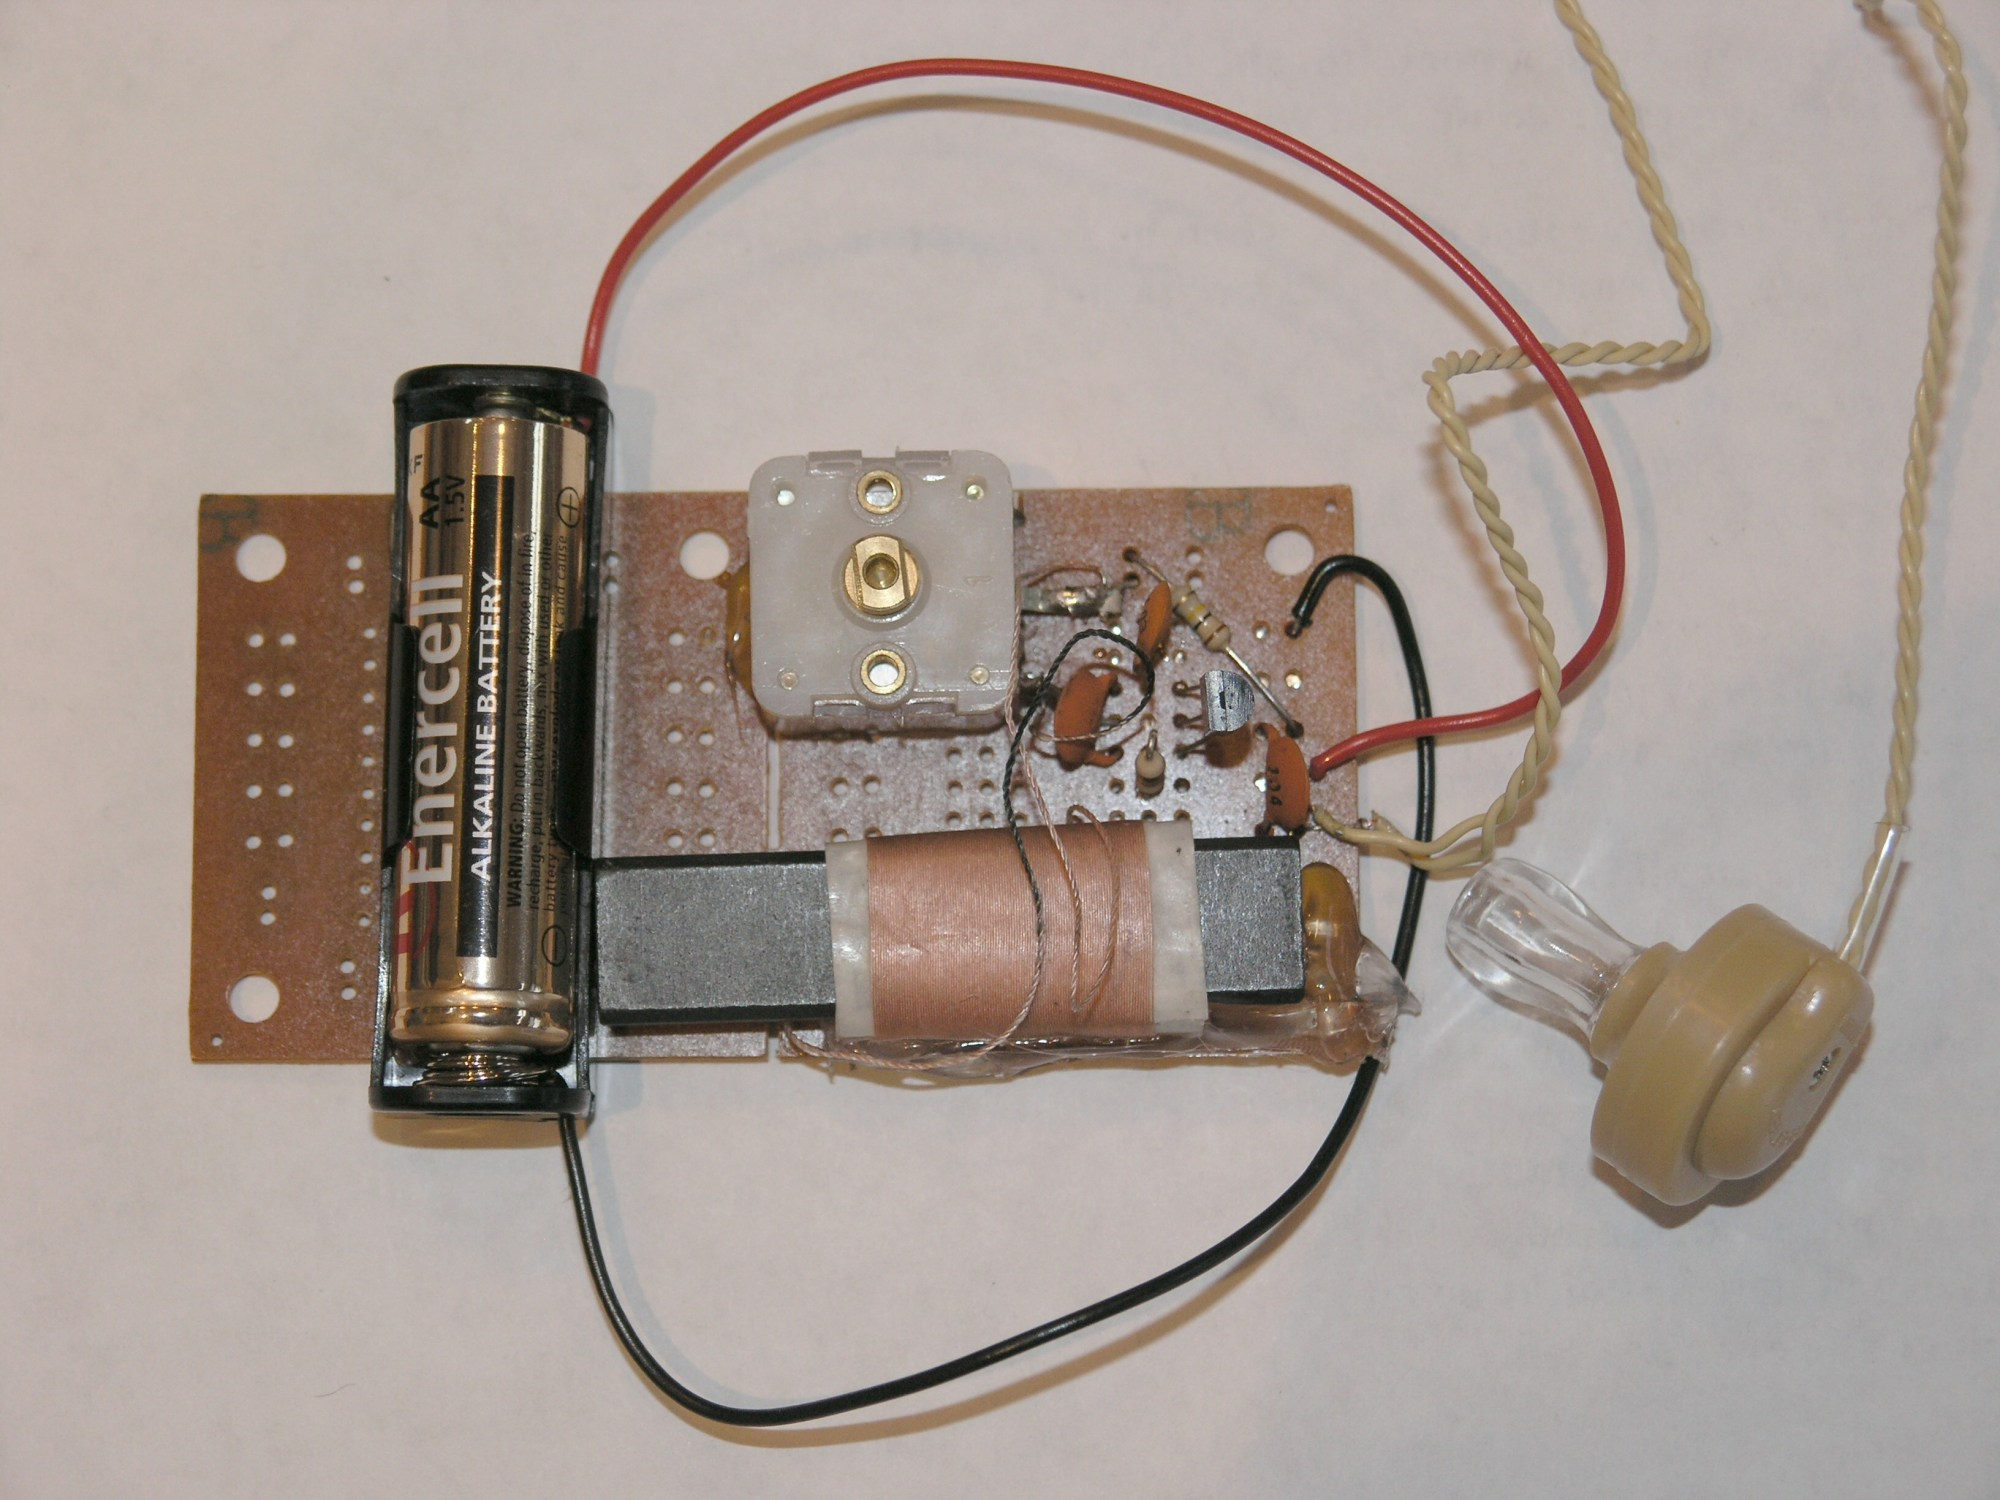 hight resolution of making the circuit permanent